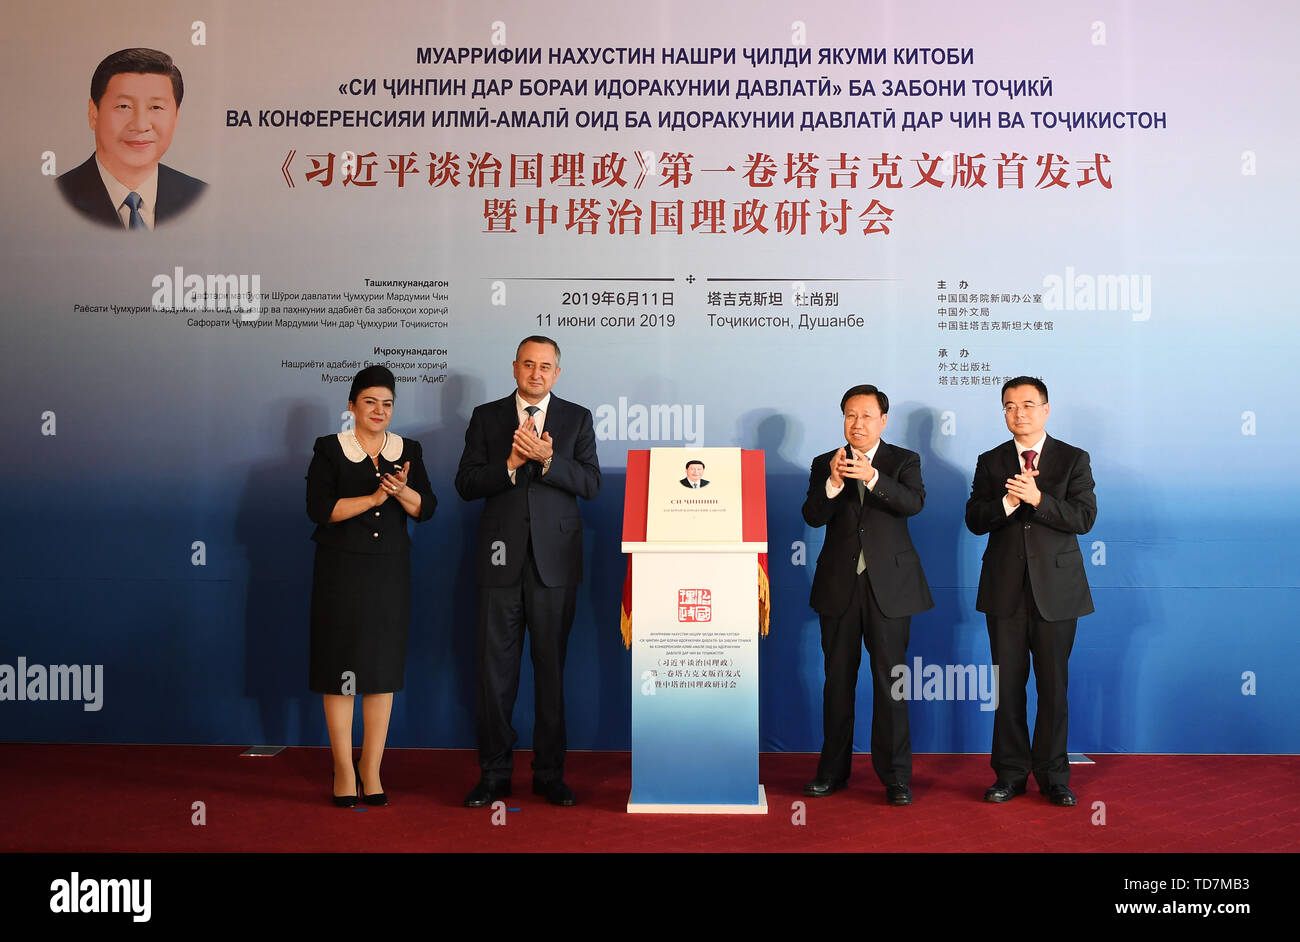 (190613) -- DUSHANBE, June 13, 2019 (Xinhua) -- Davlatali Said (2nd L), First Deputy Prime Minister of Tajikistan, Wang Xiaohui (2nd R), executive deputy head of the Publicity Department of the Central Committee of the Communist Party of China (CPC), Liu Bin (1st R), Chinese ambassador to Tajikistan and Khairiniso Yusufi (1st L), deputy speaker of Tajikistan's lower chamber of parliament (Majlisi Namoyandagon), unveil the Tajik edition of the first volume of 'Xi Jinping: The Governance of China' in Dushanbe, capital of Tajikistan, June 11, 2019. The Tajik edition of the first volume of 'Xi Jin - Stock Image